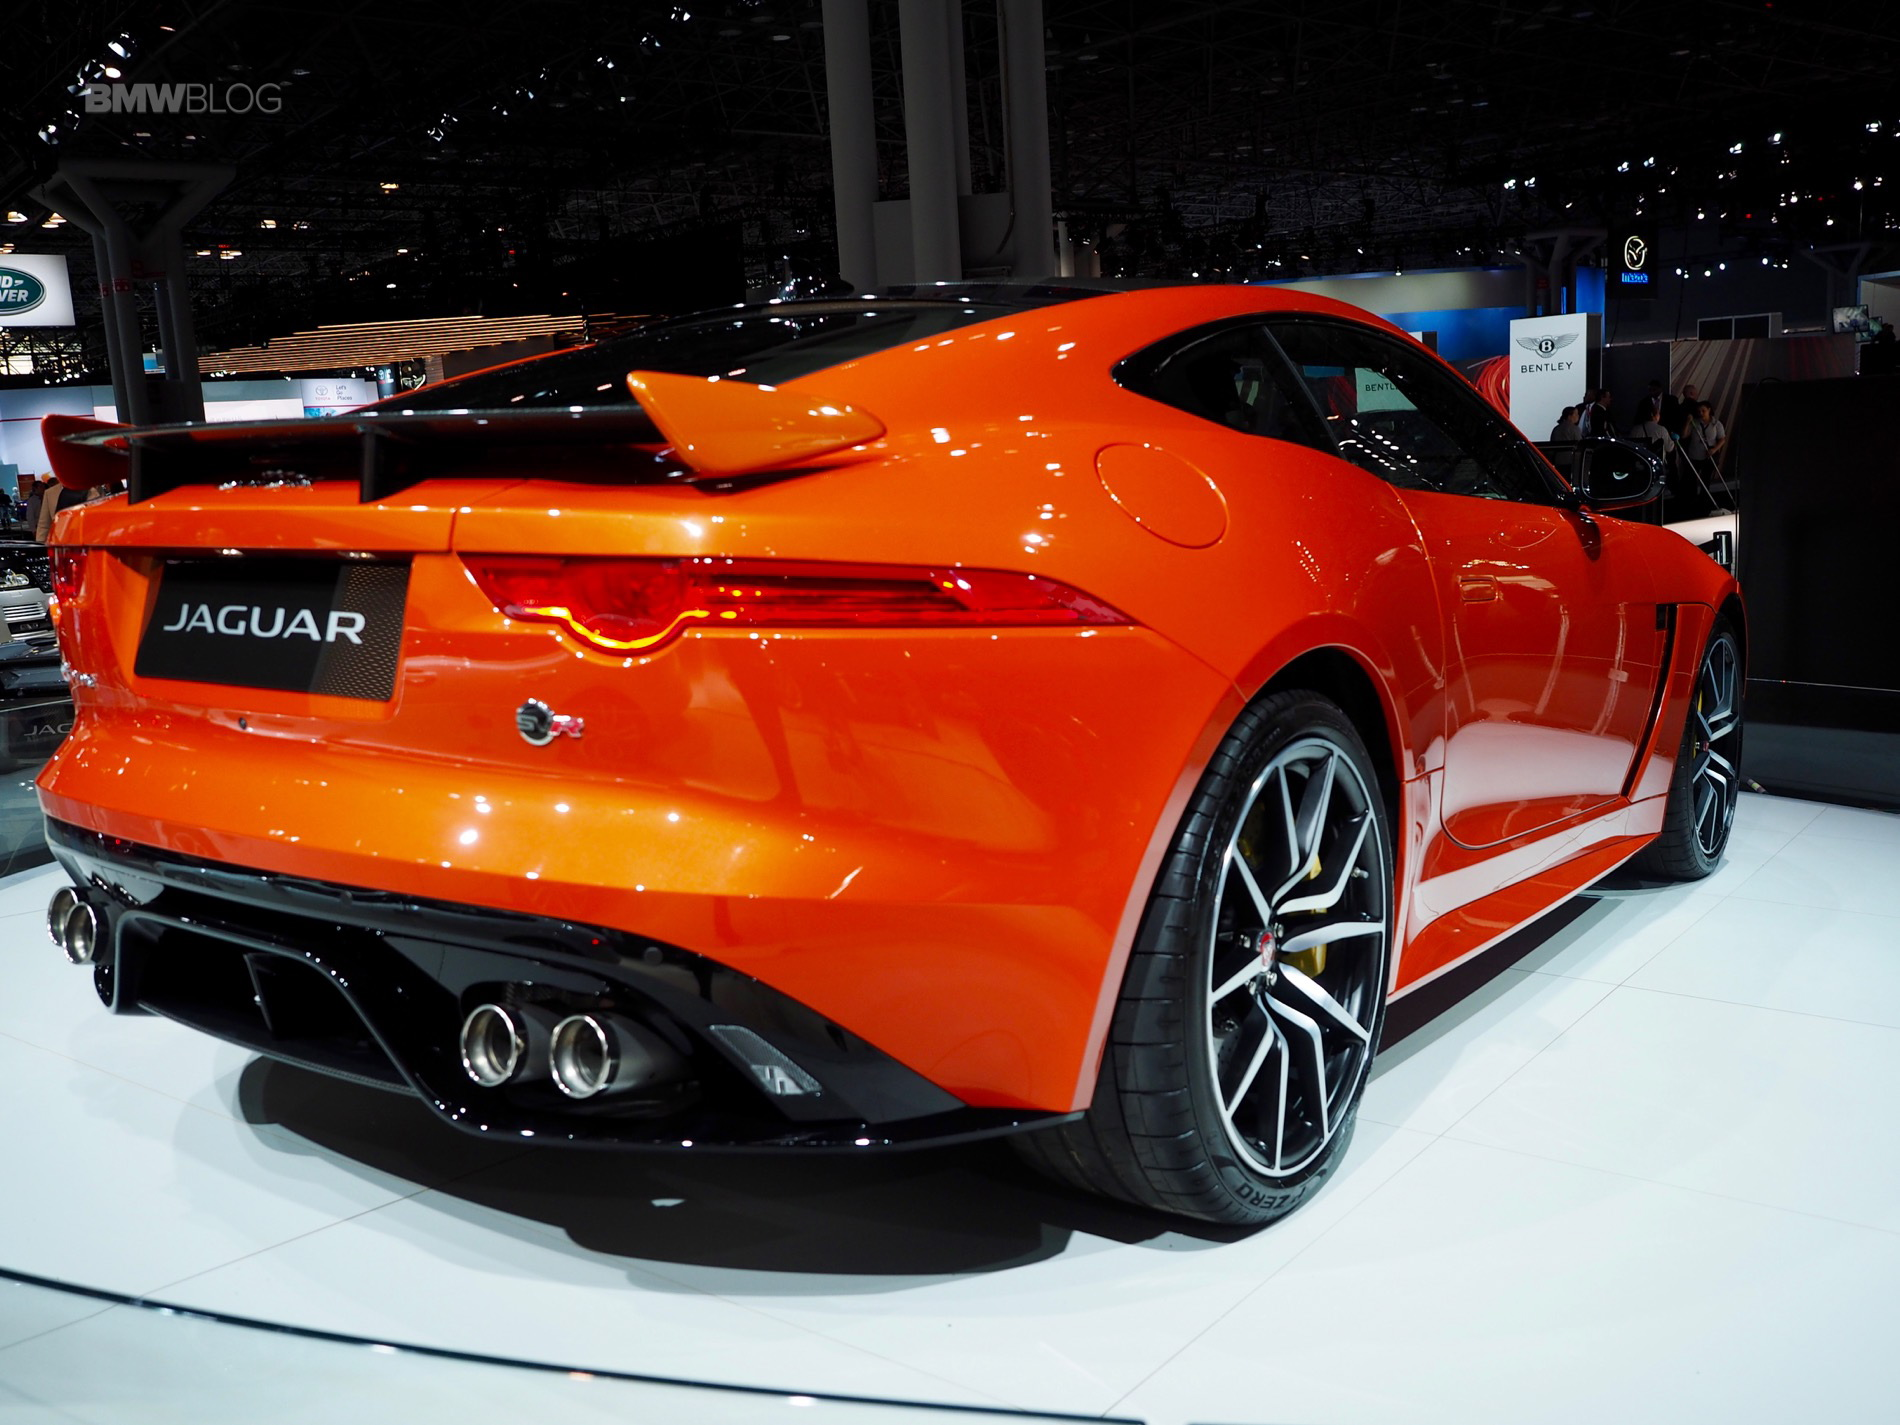 2017 Jaguar F-Type SVR one of the hottest cars at New York ...